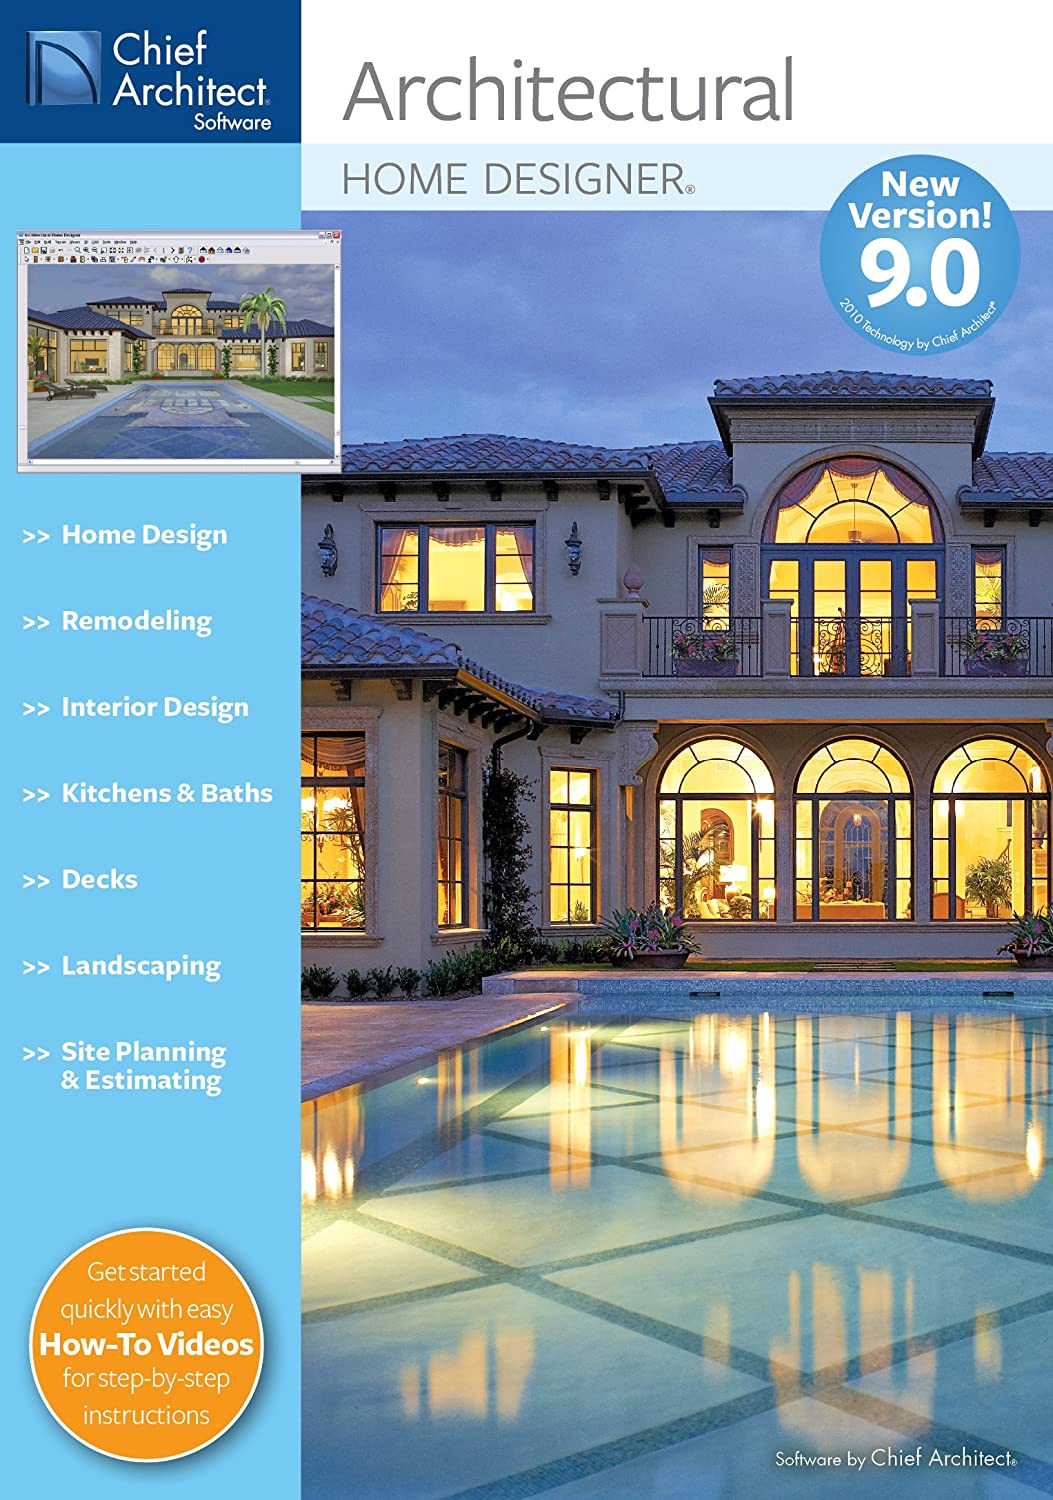 Amazon.com: Chief Architect Architectural Home Designer 9.0 [Download] [OLD  VERSION]: Software